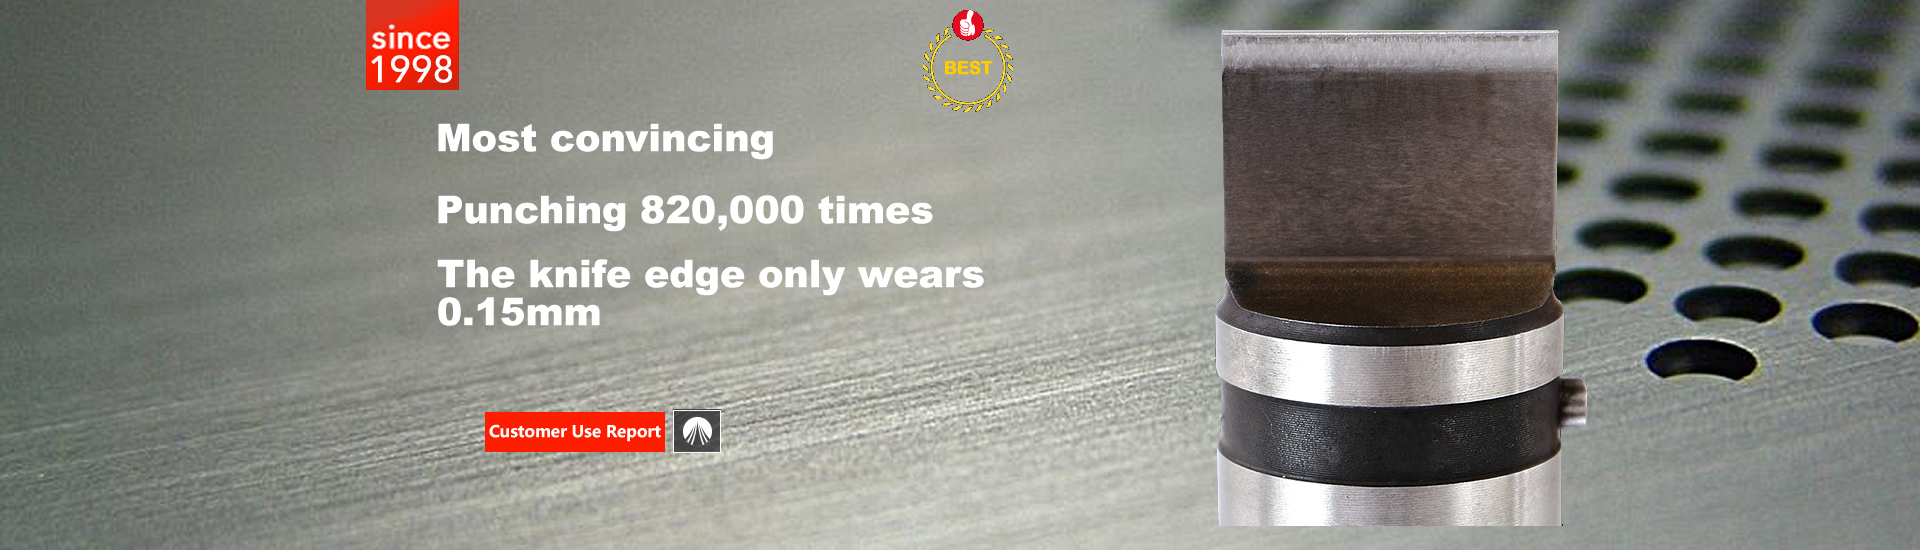 yzjinsd Thick Turret tooling is compatible with Amada, Conic